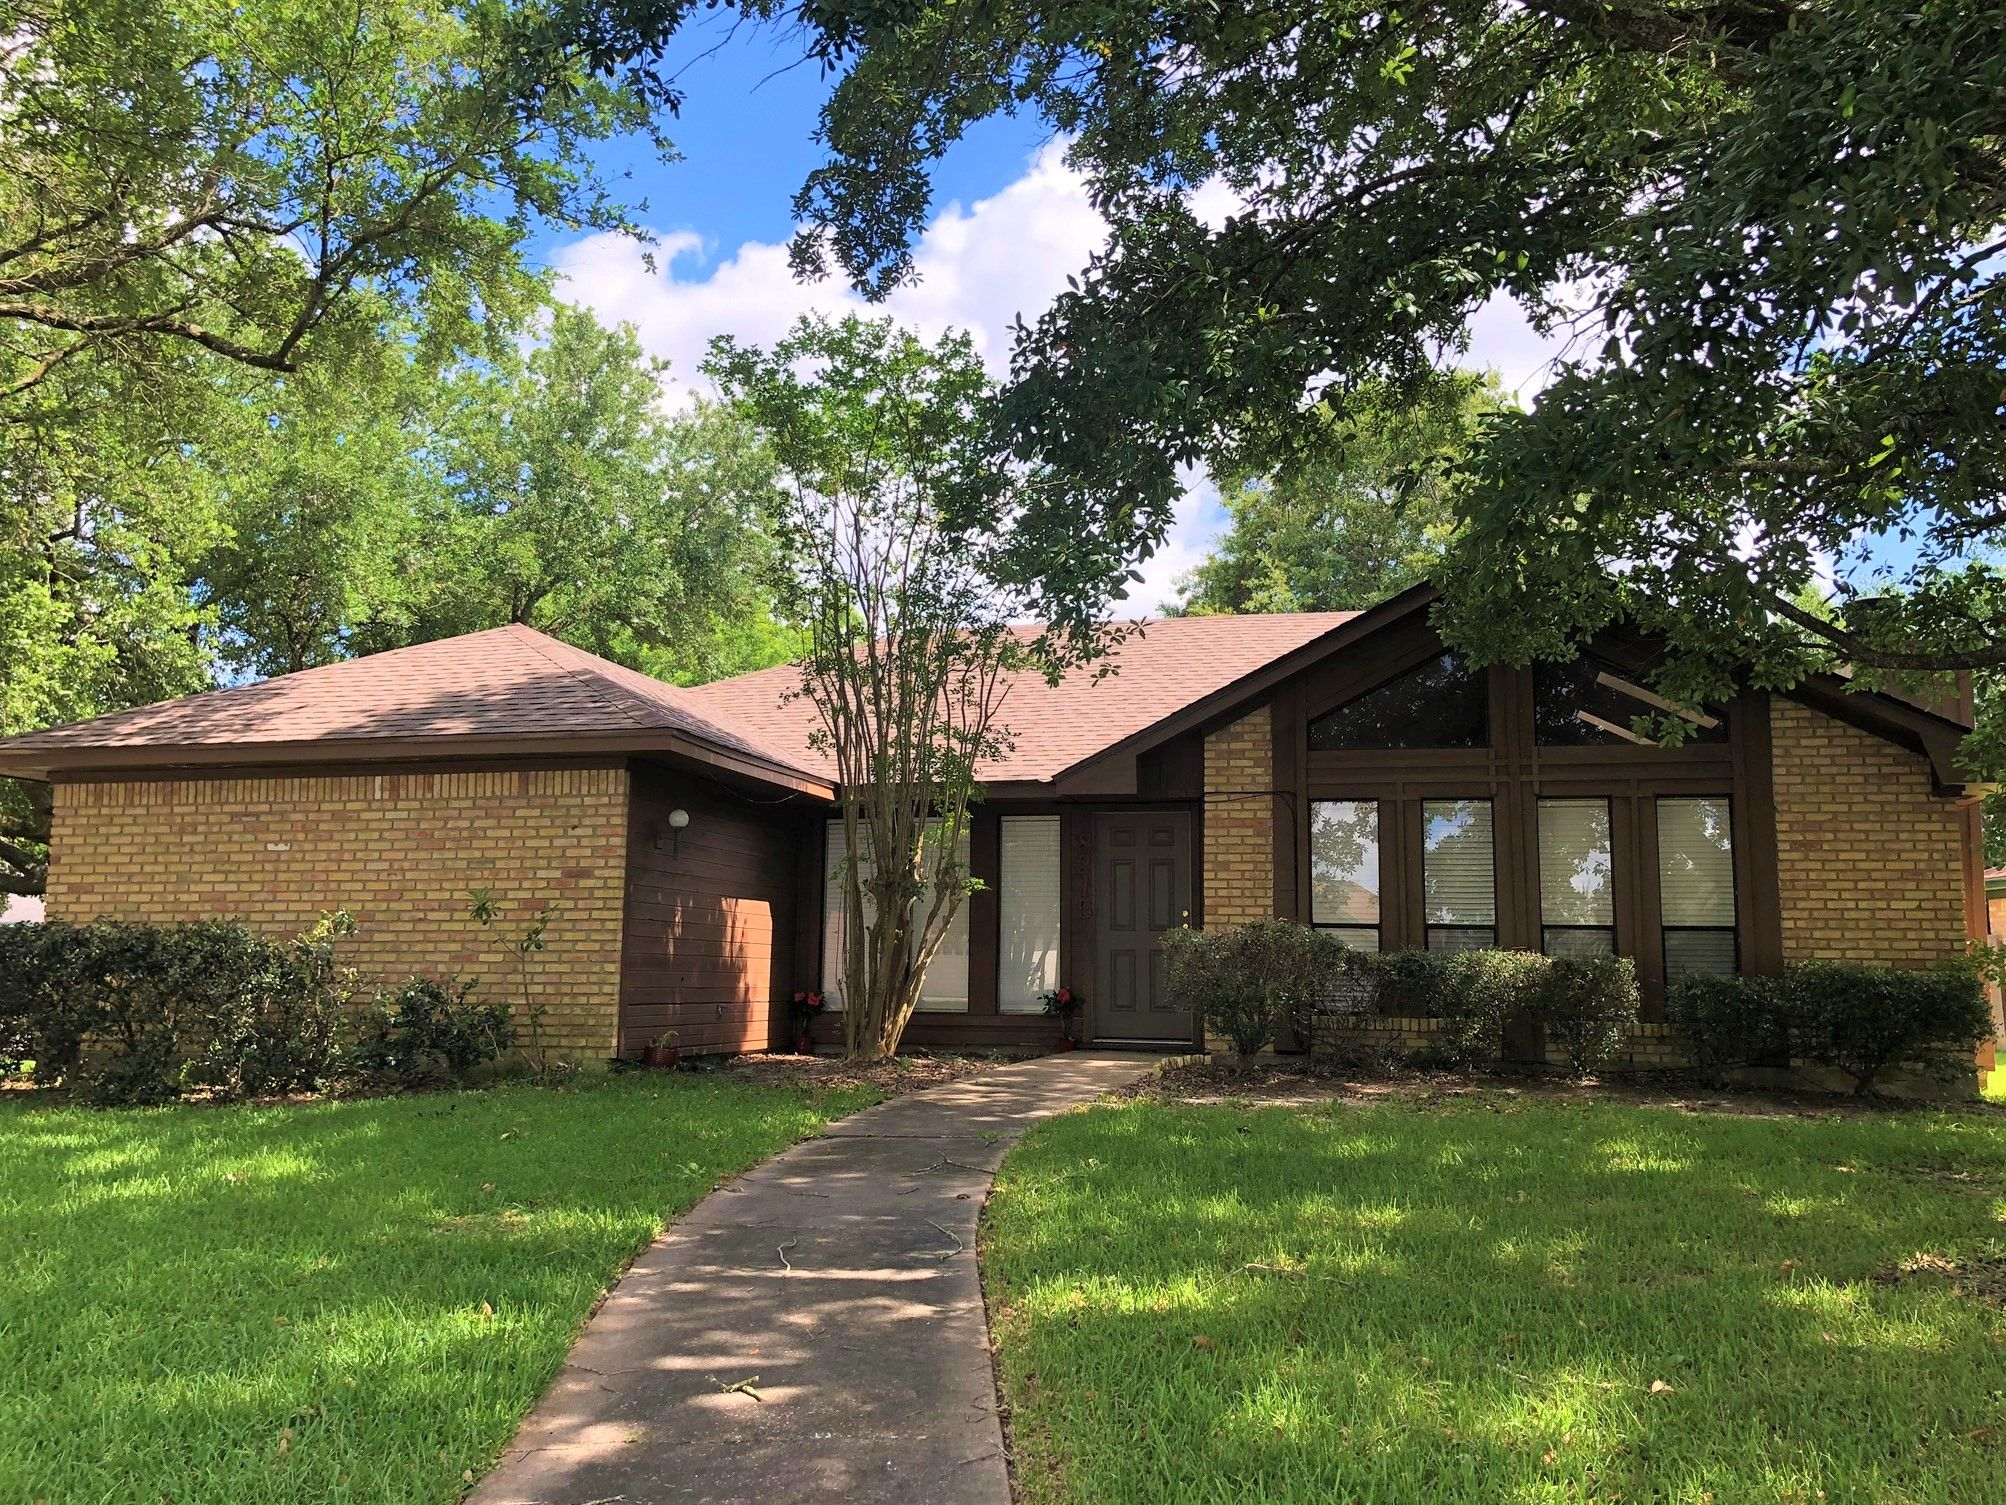 8215 Thad Ln Beaumont Tx 77706 3 Bed 2 Bath Single Family